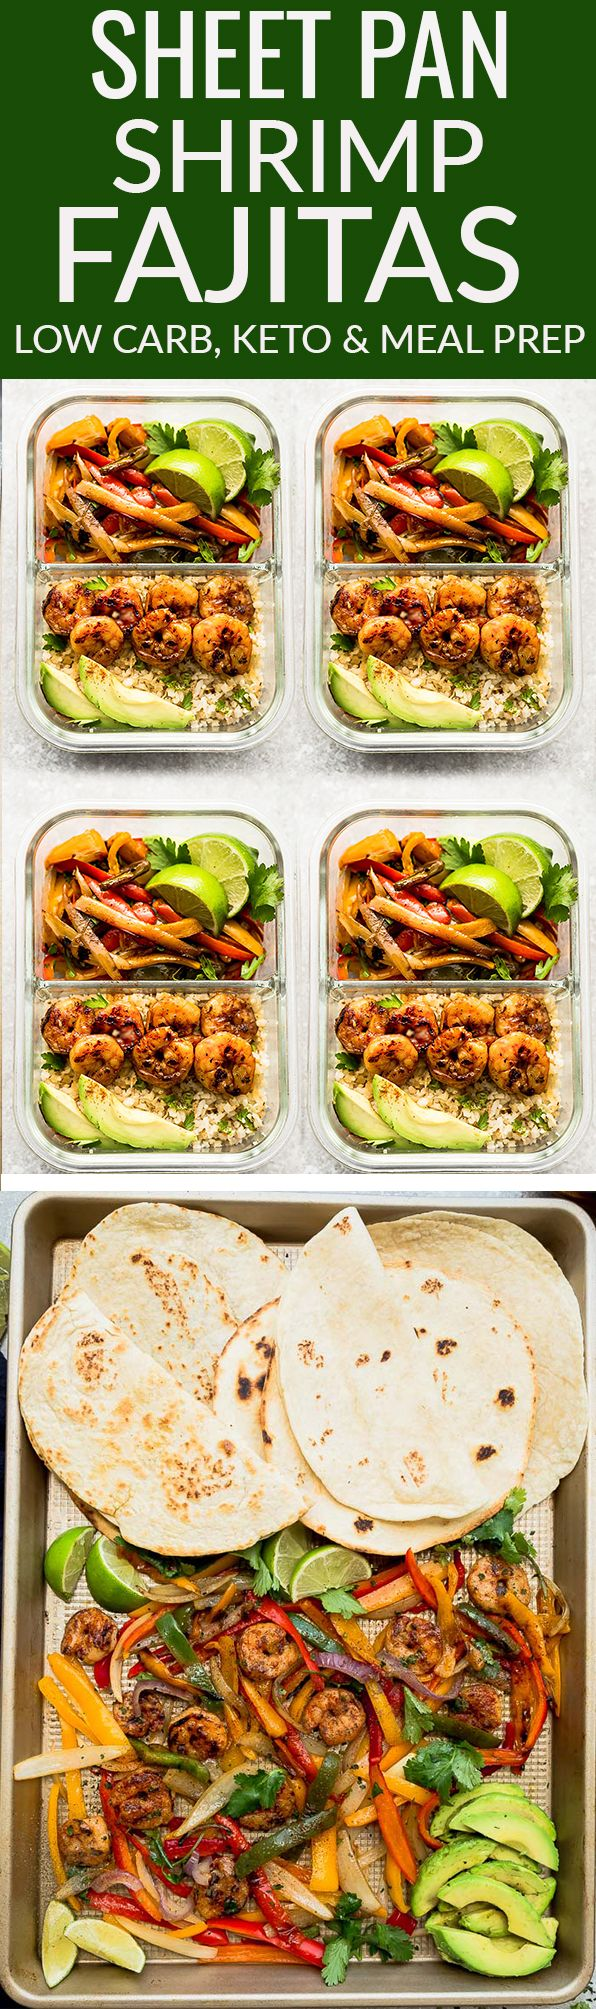 Sheet Pan Shrimp Fajitas - the perfect easy and healthy one pan meal for busy weeknights. Best of all, bursting with chili lime flavors & served with low carb tortillas. Ready in just 20 minutes and easy to customize with chicken or steak. Great for Sunday meal prep for packing in work or school lunches. Serve with low carb tortillas, salad or cauliflower rice for a low carb version. #mealprep #fajitas #shrimp #lent #mexican #healthy #lowcarb #keto #shrimpfajitas